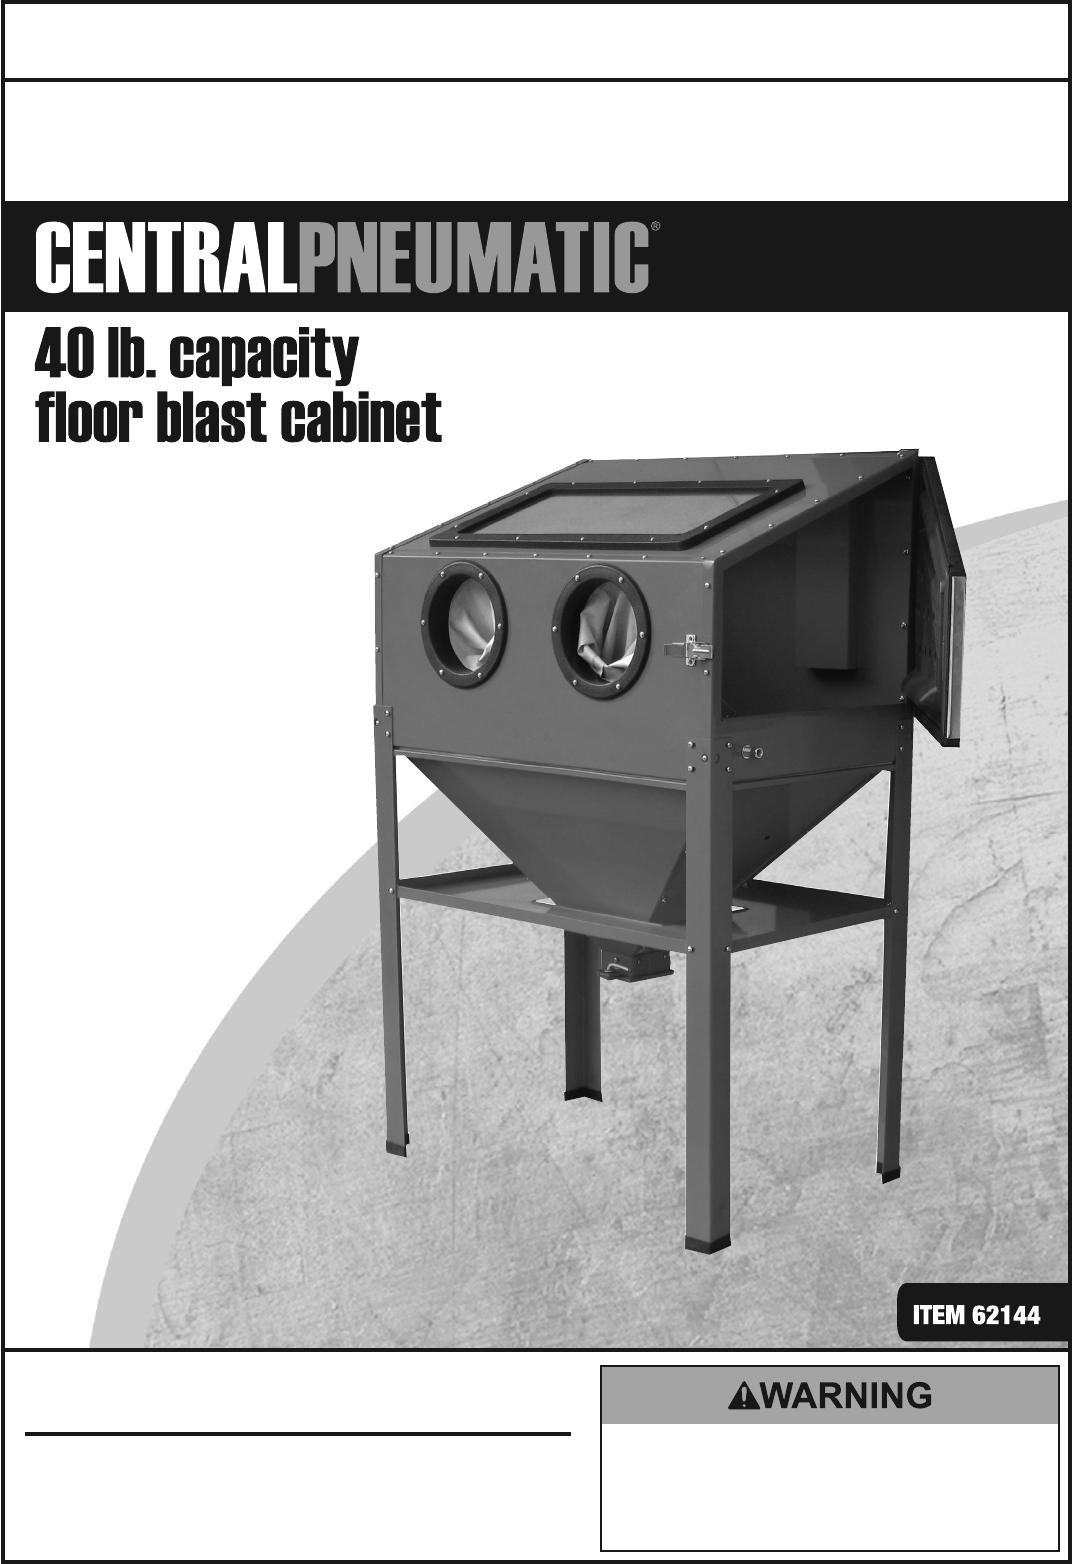 Manual For The 62144 Abrasive Blast Cabinet